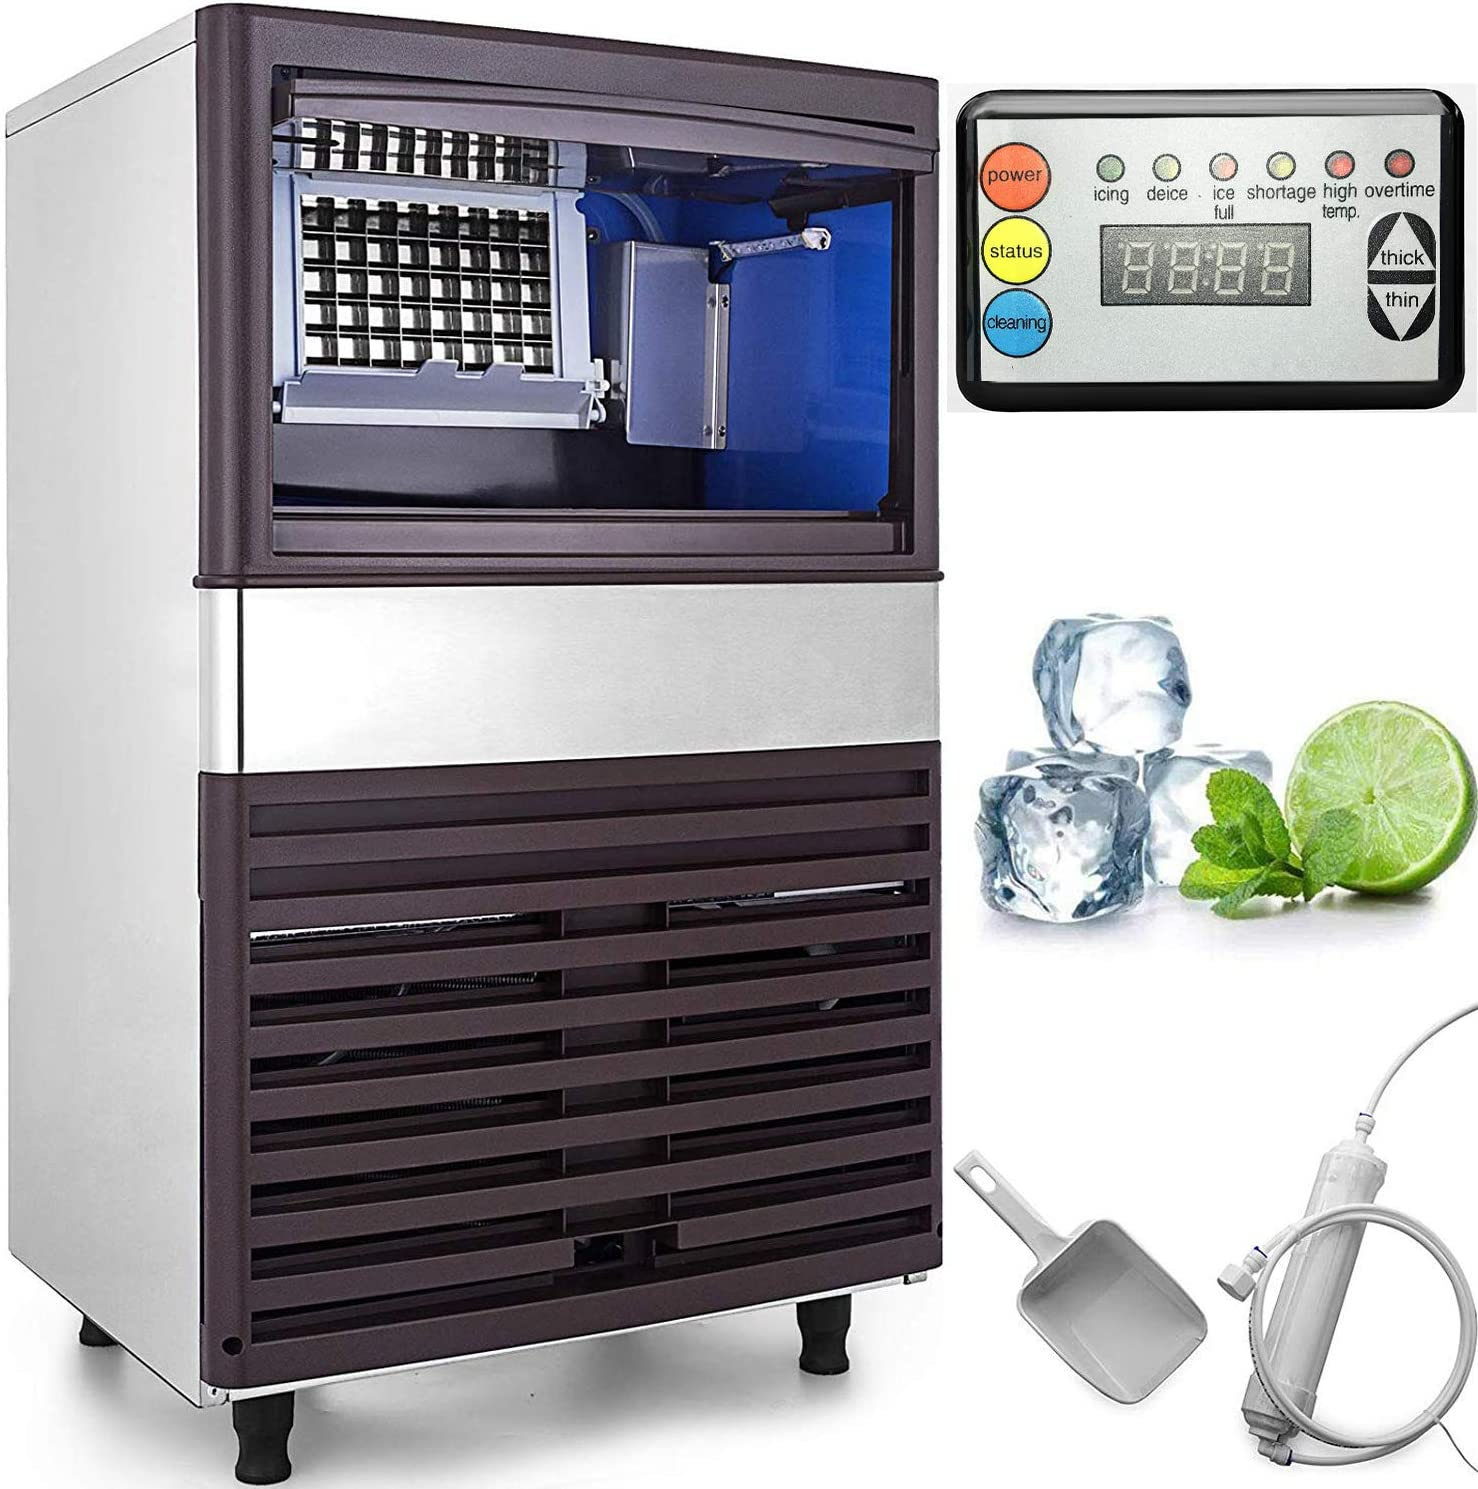 VEVOR 110V Commercial Ice Maker 110 LBS in 24 Hrs Stainless Steel with 44lbs Storage Capacity 40 Cubes Auto Clean for Bar Home Supermarkets, Includes Scoop and Connection Hose